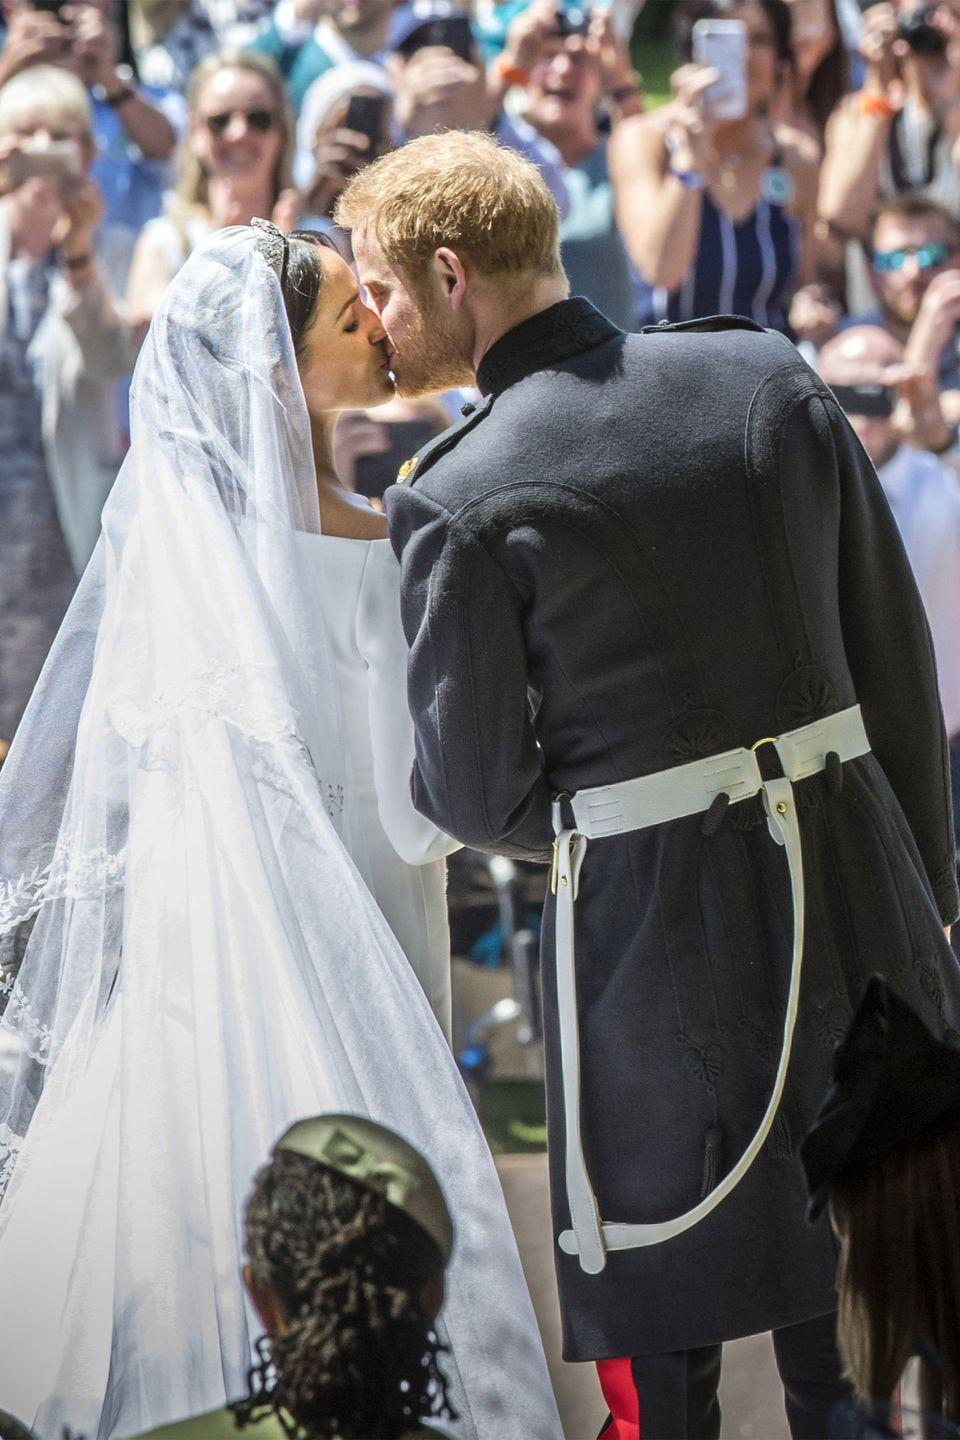 <p>Talk about a swoonworthy moment! Harry and Meghan kissed outside the steps of St. George's Chapel as crowds cheered for the newlyweds. </p>